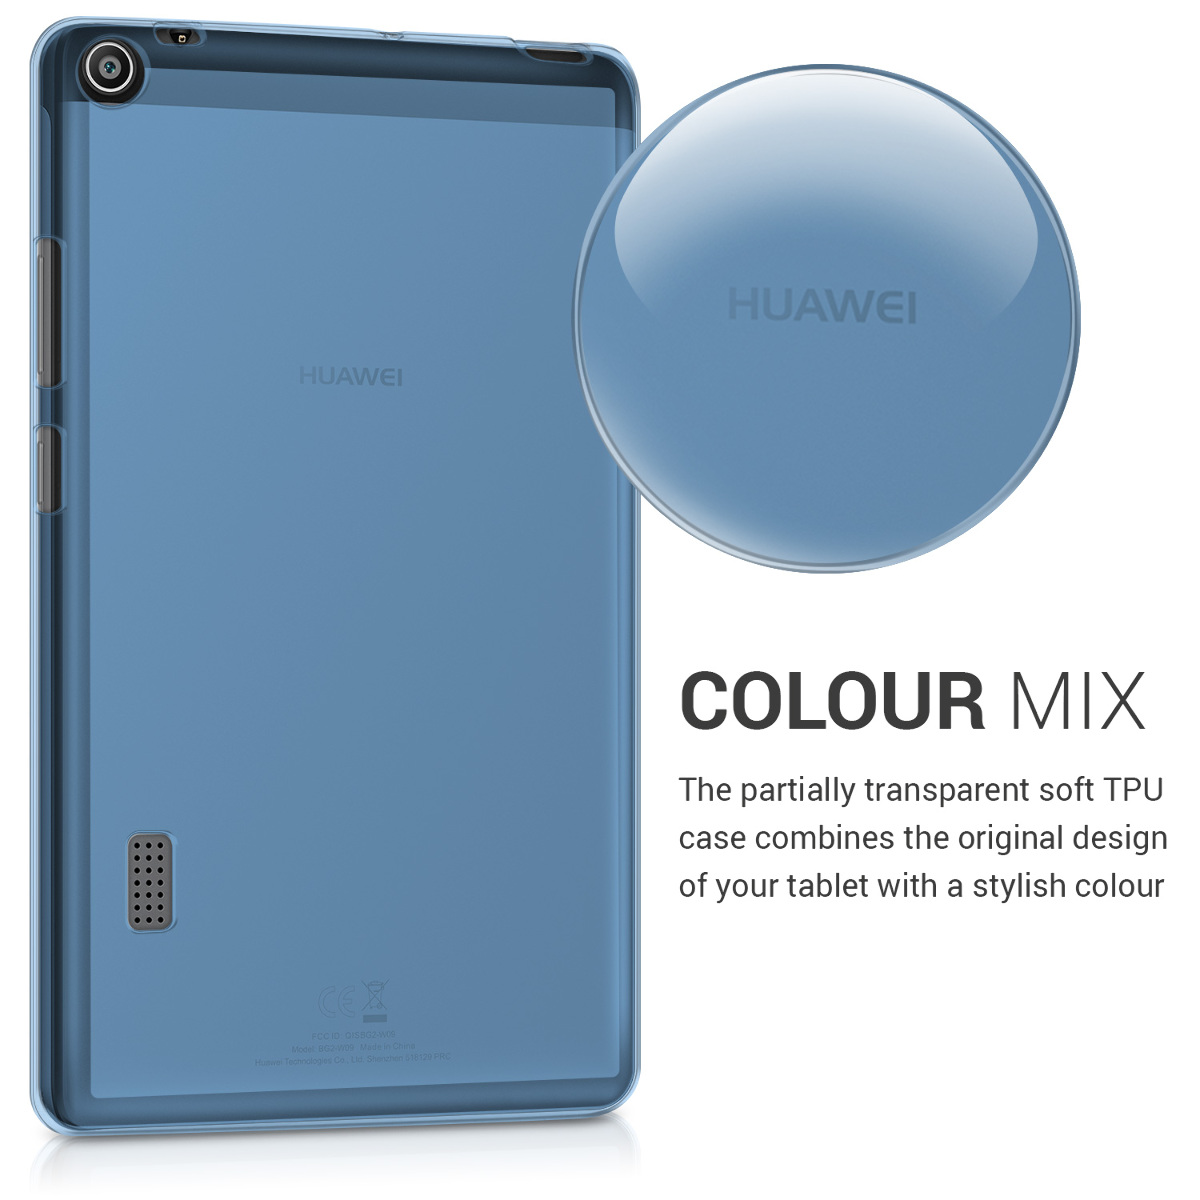 31bf7f956e7 kwmobile Crystal TPU Cover Compatible with Huawei MediaPad T3 7.0 - Mobile  Cell Phone Case - Blue. ‹ › ‹ › ‹ › ‹ ›